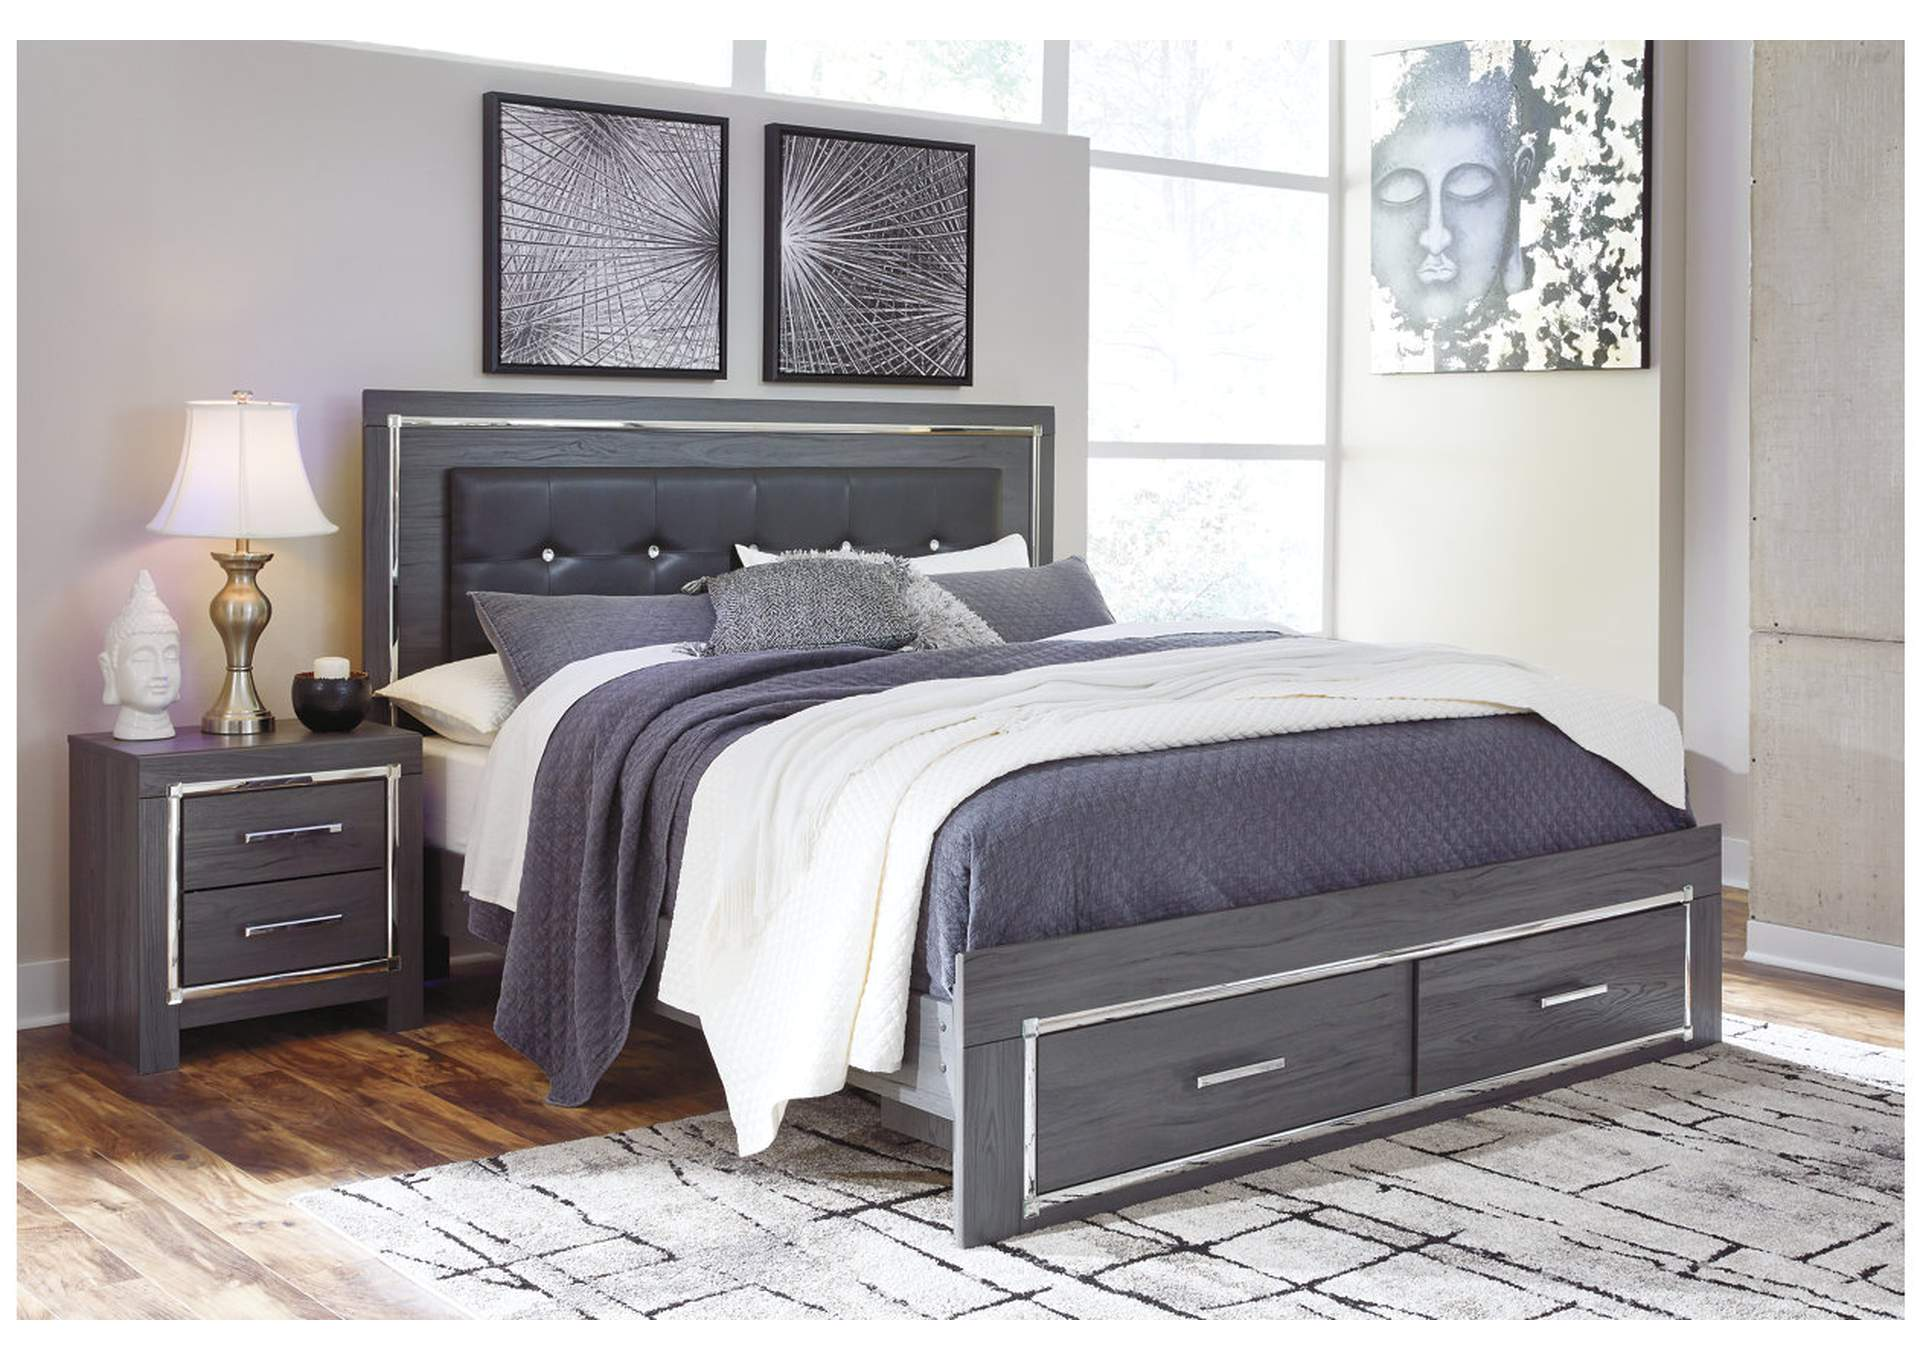 Lodanna Gray King Storage Bed,Signature Design By Ashley